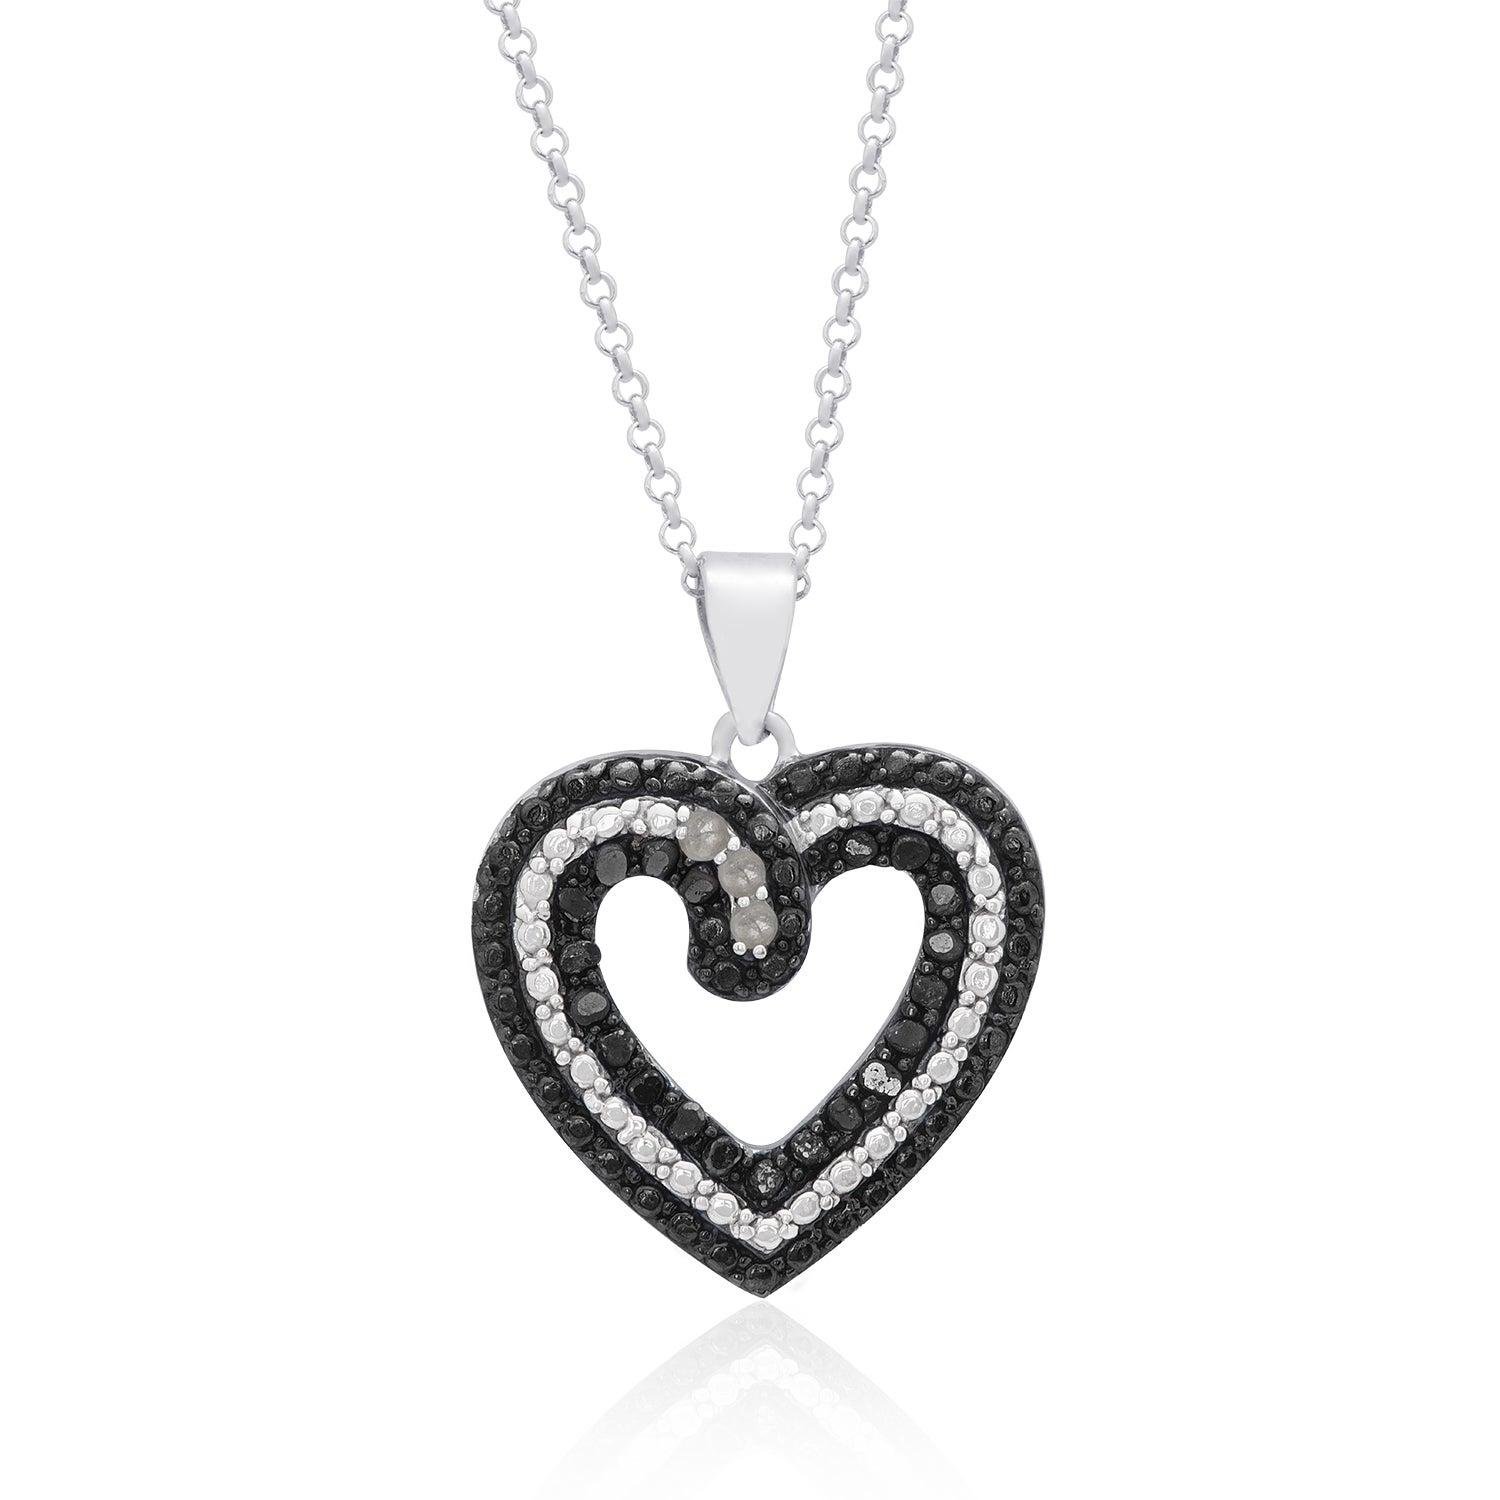 Shop finesque sterling silver 14ct tdw black diamond heart necklace shop finesque sterling silver 14ct tdw black diamond heart necklace on sale free shipping on orders over 45 overstock 9109255 aloadofball Images